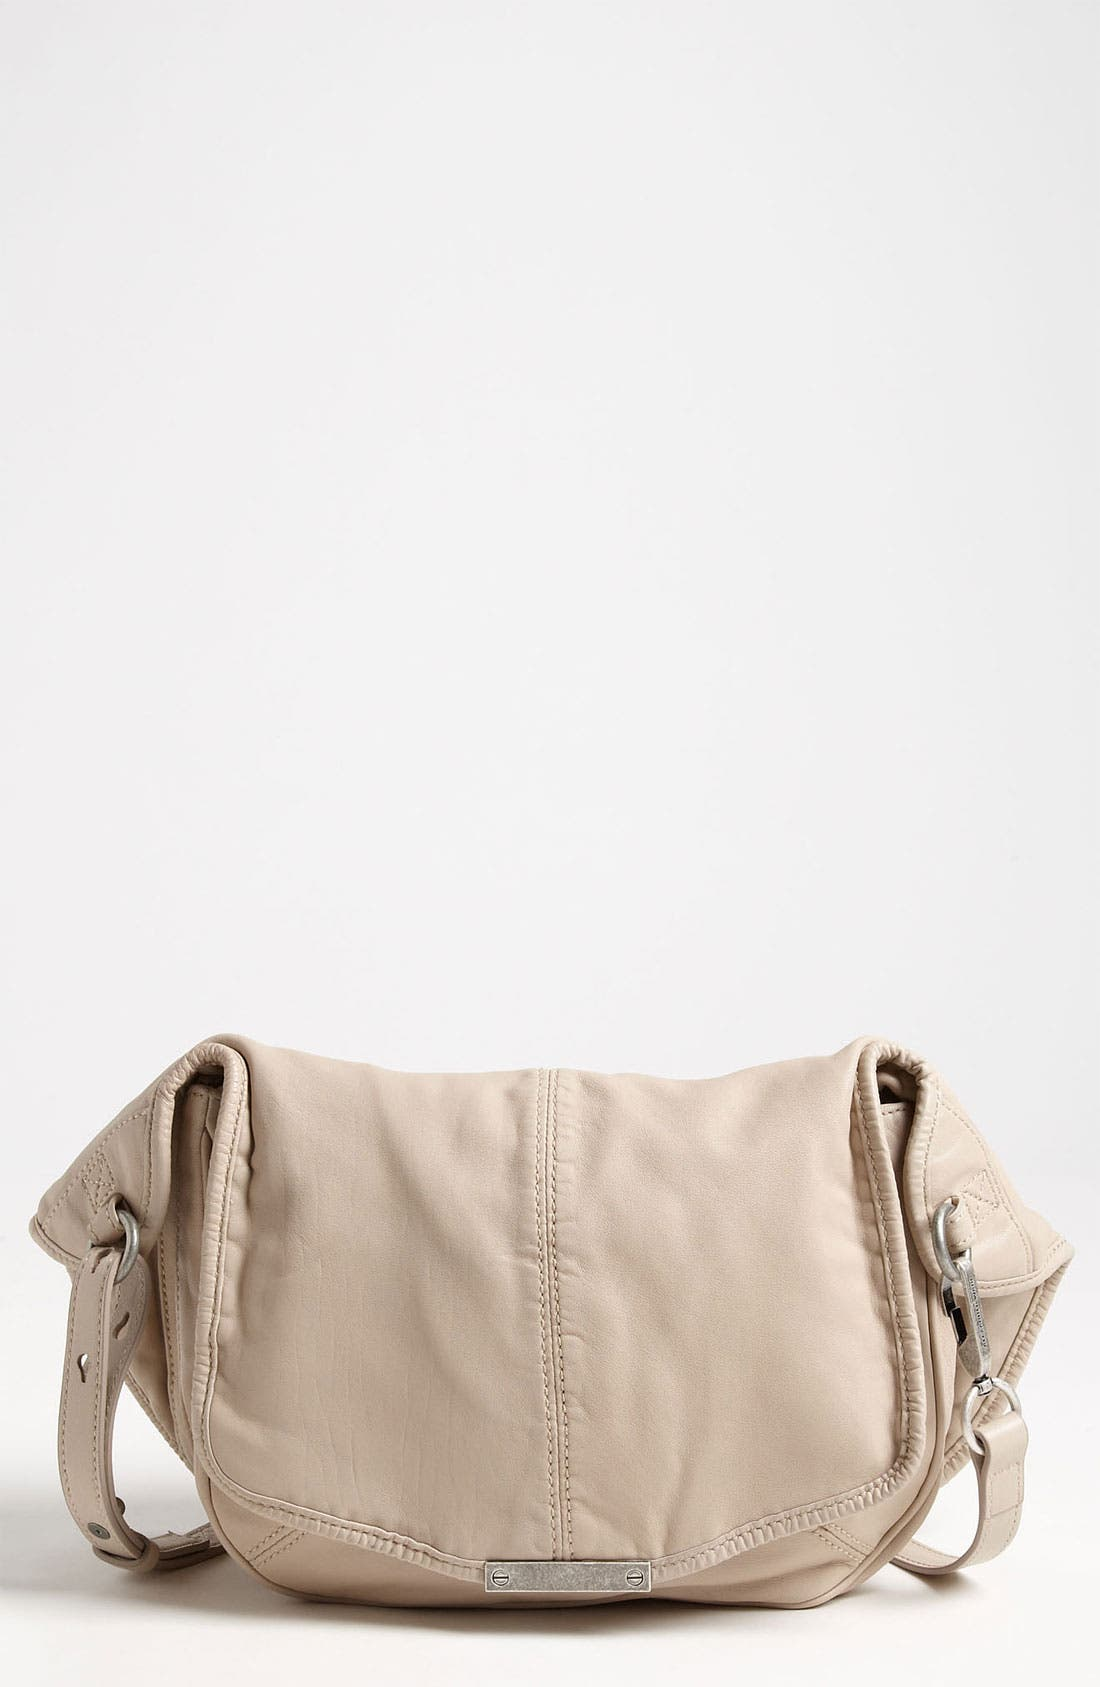 Alternate Image 1 Selected - Alexander Wang 'Iris' Leather Shoulder Bag